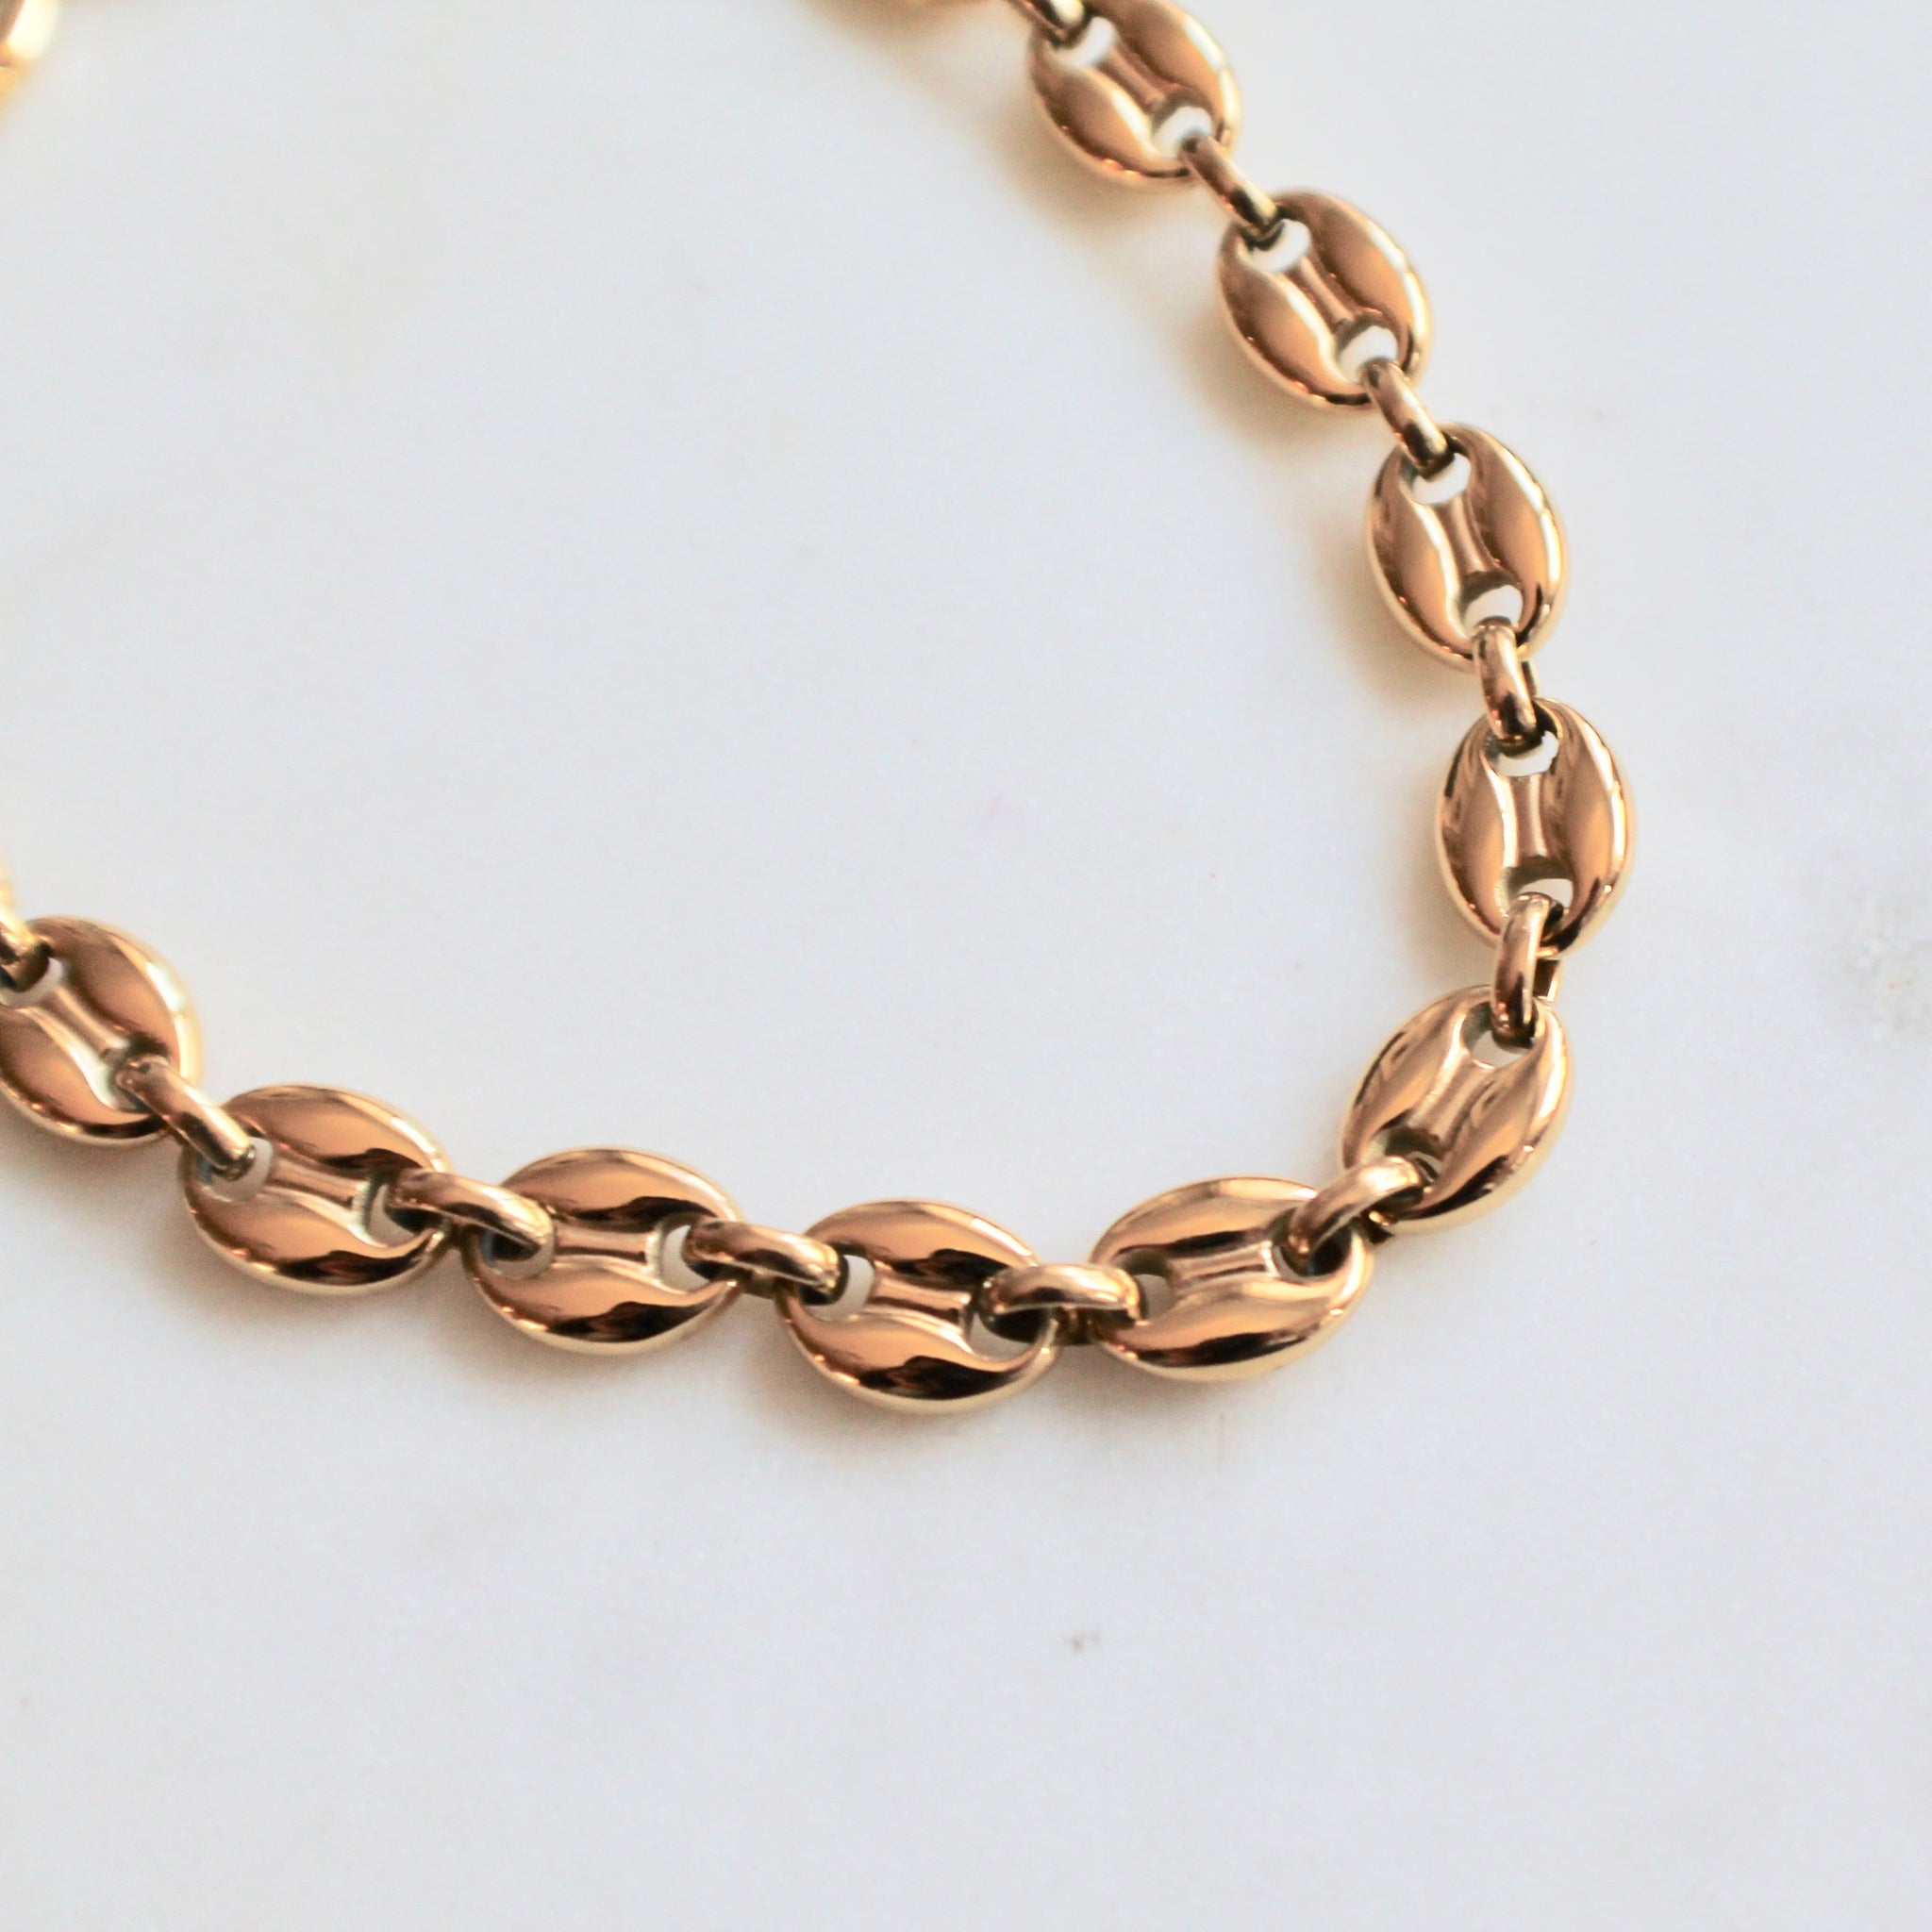 Gold puff anchor chain necklace - Lily Lough Jewelry